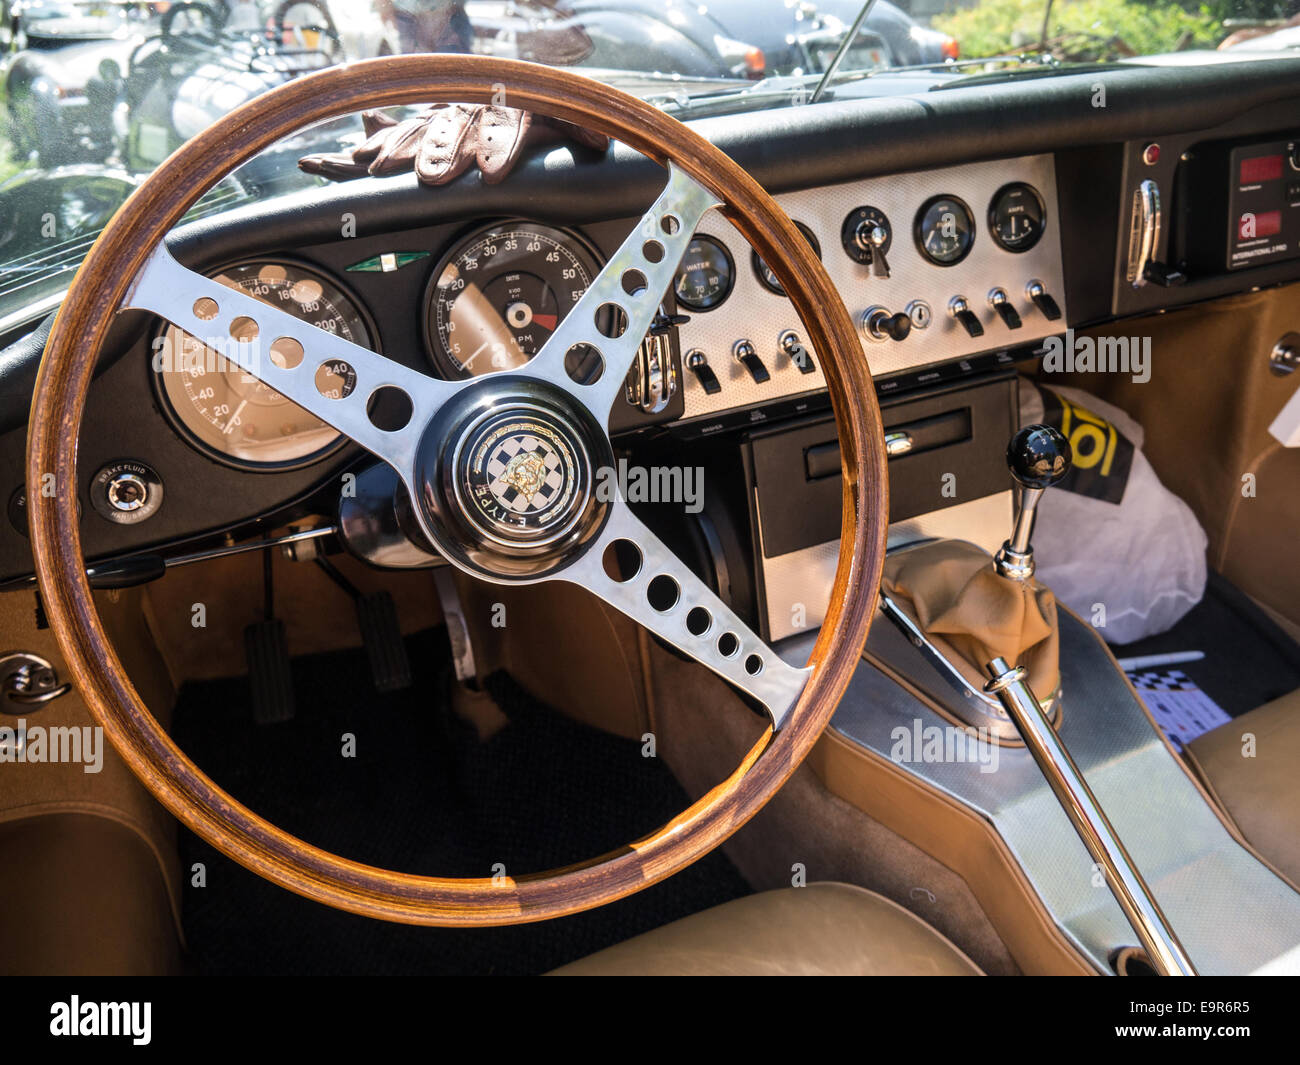 the interior of a classic jaguar e type racing car stock photo 74883625 alamy. Black Bedroom Furniture Sets. Home Design Ideas